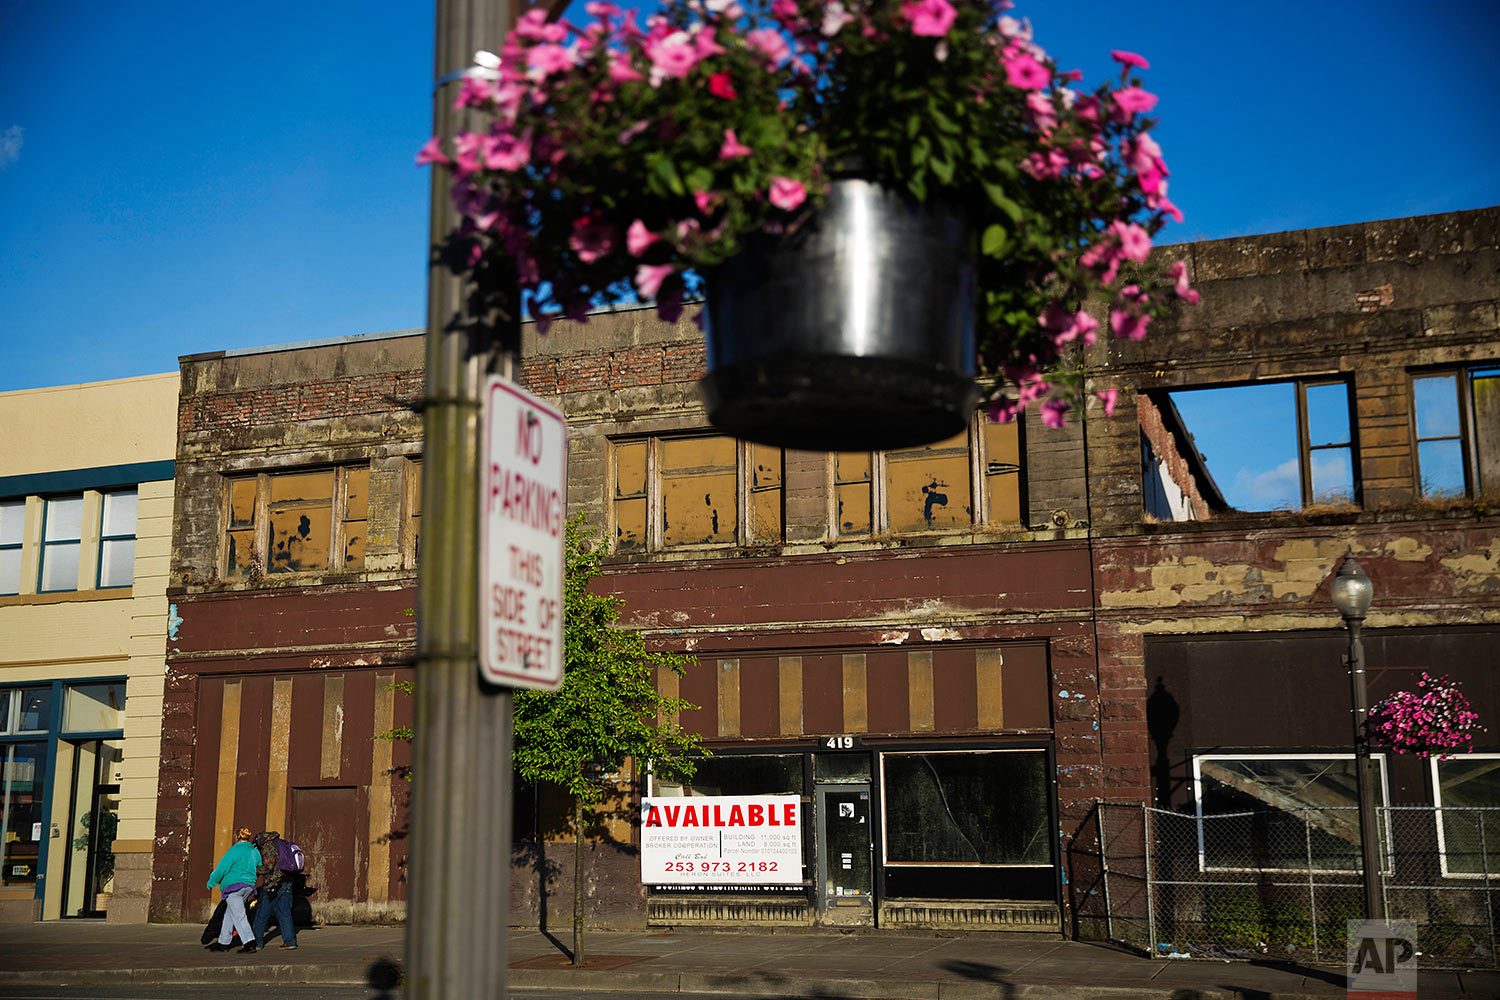 Dilapidated storefronts stand along baskets of pink petunias that hang from light posts all over town, watered regularly by residents trying to make their city feel alive again in Aberdeen, Wash., Friday, June 16, 2017. Six months into Trump's presidency, his supporters in this county, battered by drugs and death, maintain differing degrees of faith that he will make good on his promise to fix the rotting working class economy at the root of this plague on their doorstep. (AP Photo/David Goldman)